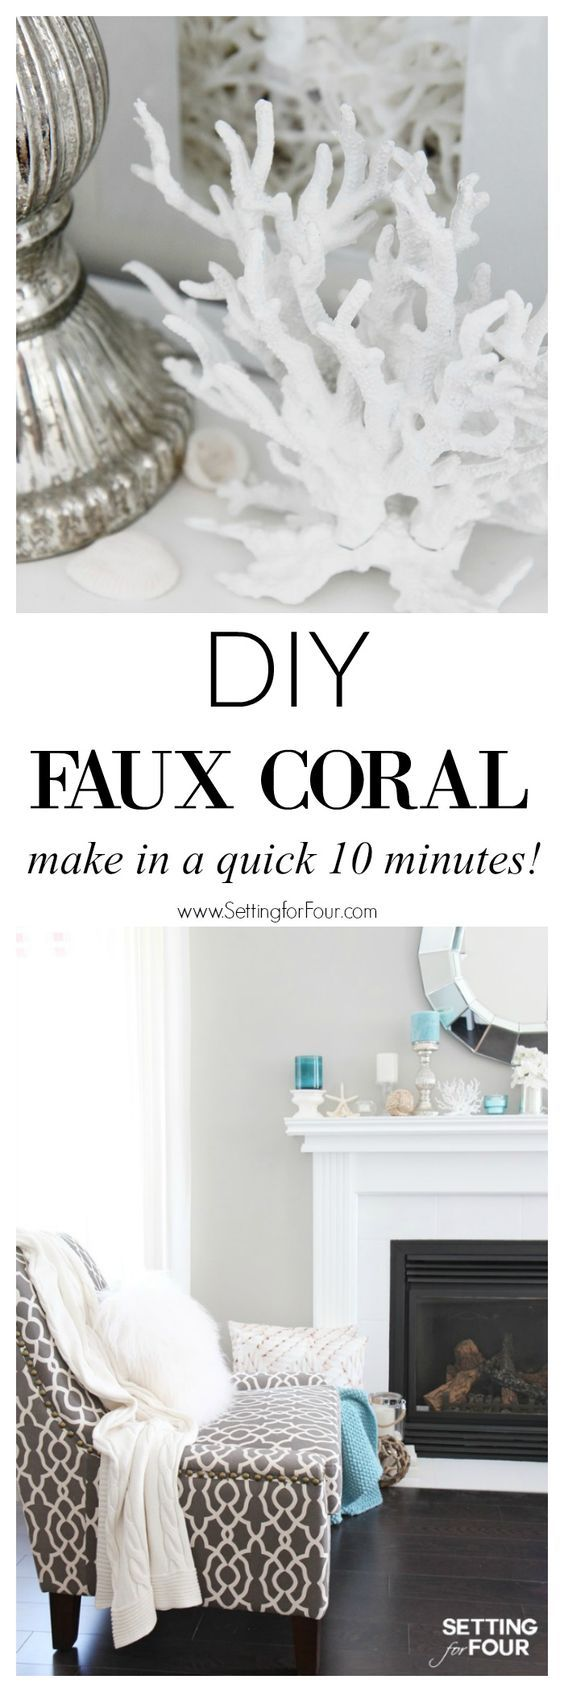 See how you can make this fast and fabulous 10 minute decor idea for your home! DIY Faux Coral inspired by Pottery Barn! Supply list, tutorial and styling ideas included!